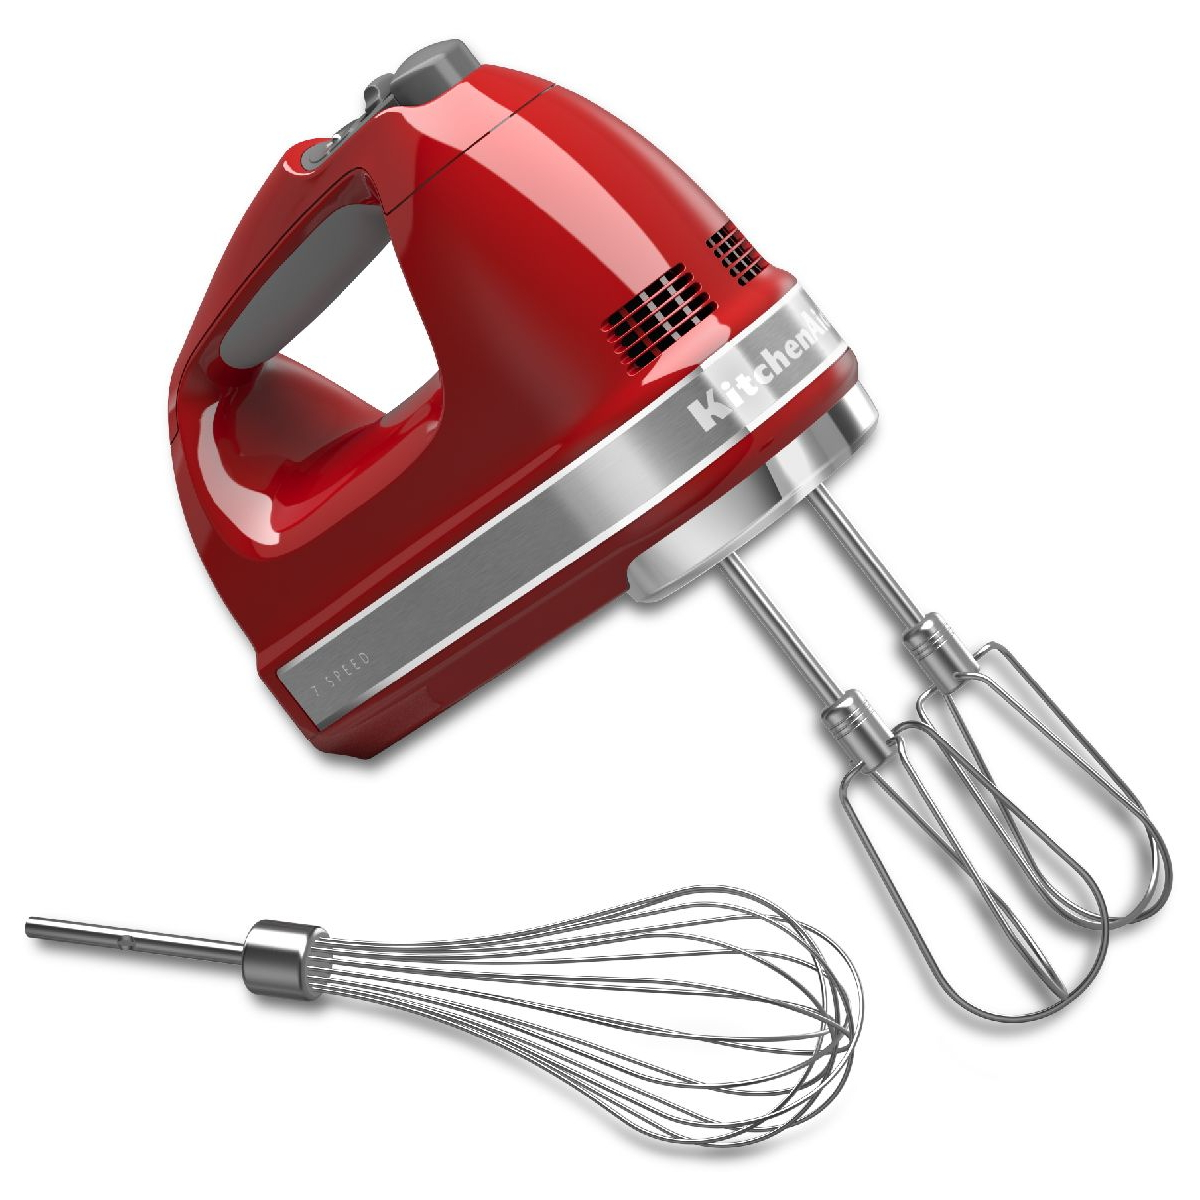 KitchenAid Empire Red 7 Speed Digital Hand Mixer with Turbo Beater II Accessories and Pro Whisk